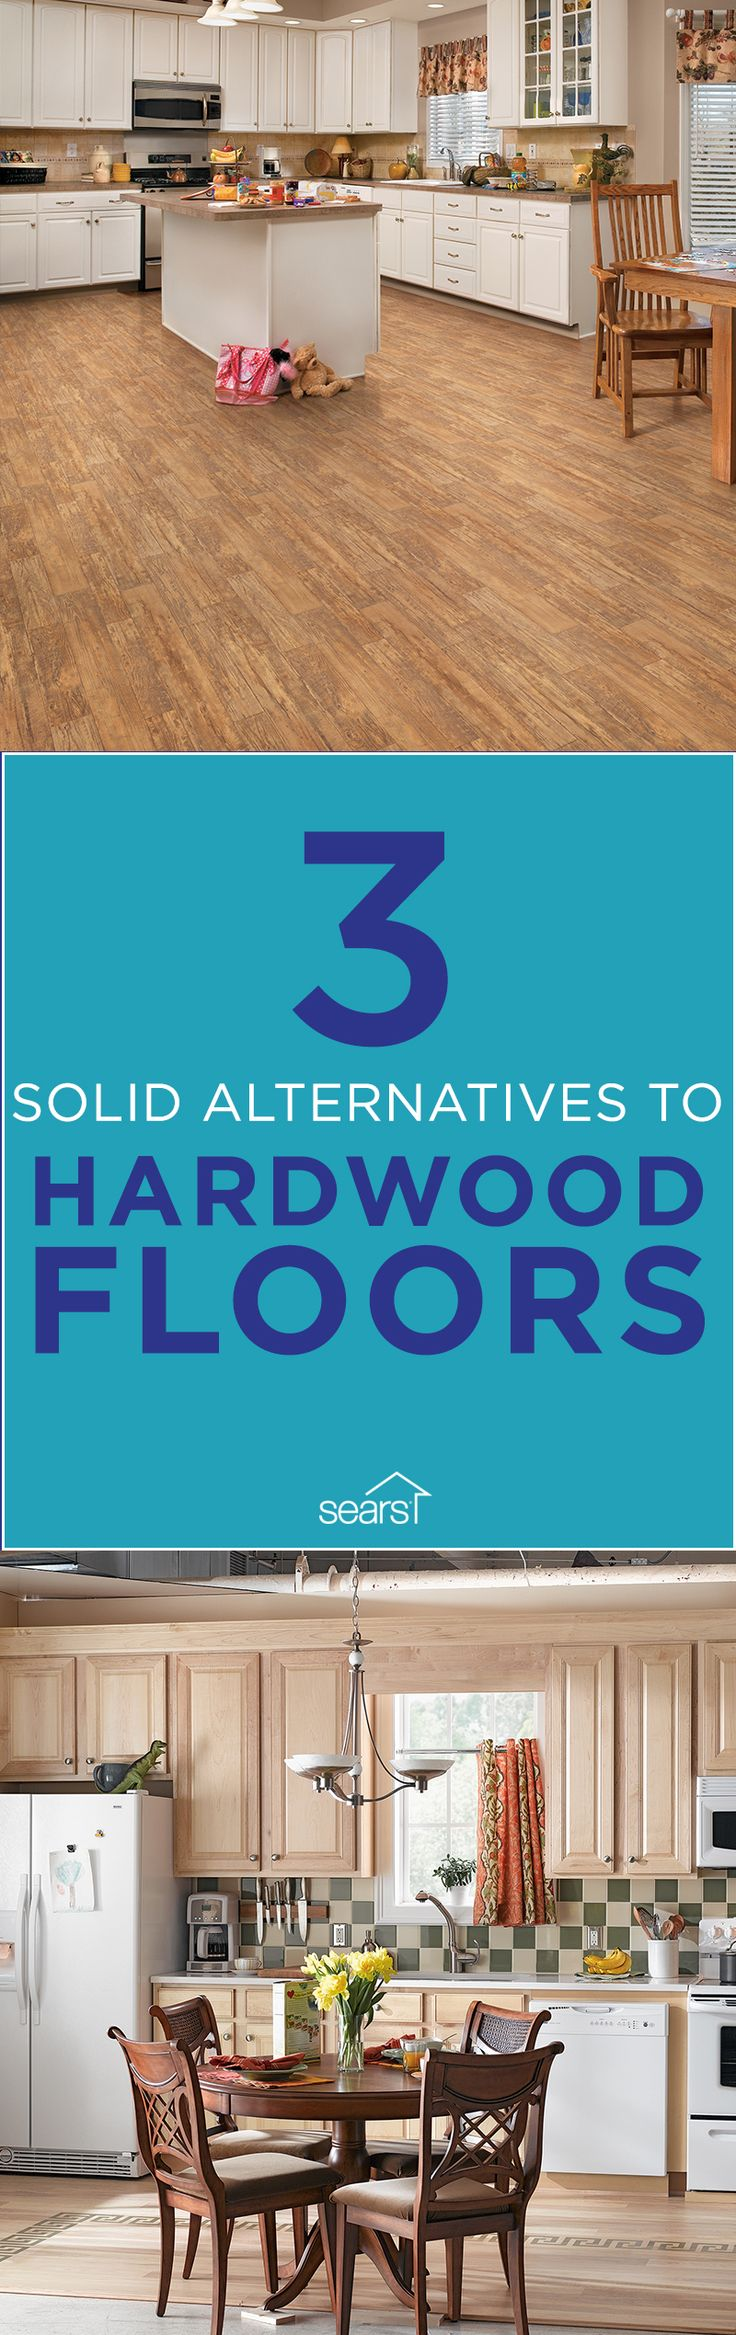 Hardwood floors are beautiful, warm and timeless — but they can also be expensive and require a good amount of maintenance. If you don't want to splurge on real hardwood floors or you just want something a little different, the alternatives to wood floors are hard to beat in price, maintenance and looks. Sears carries options in low-cost laminate, wood-look tile and luxury vinyl tile. Visit the Sears Home Improvement blog for more details on alternatives to hardwood floors.